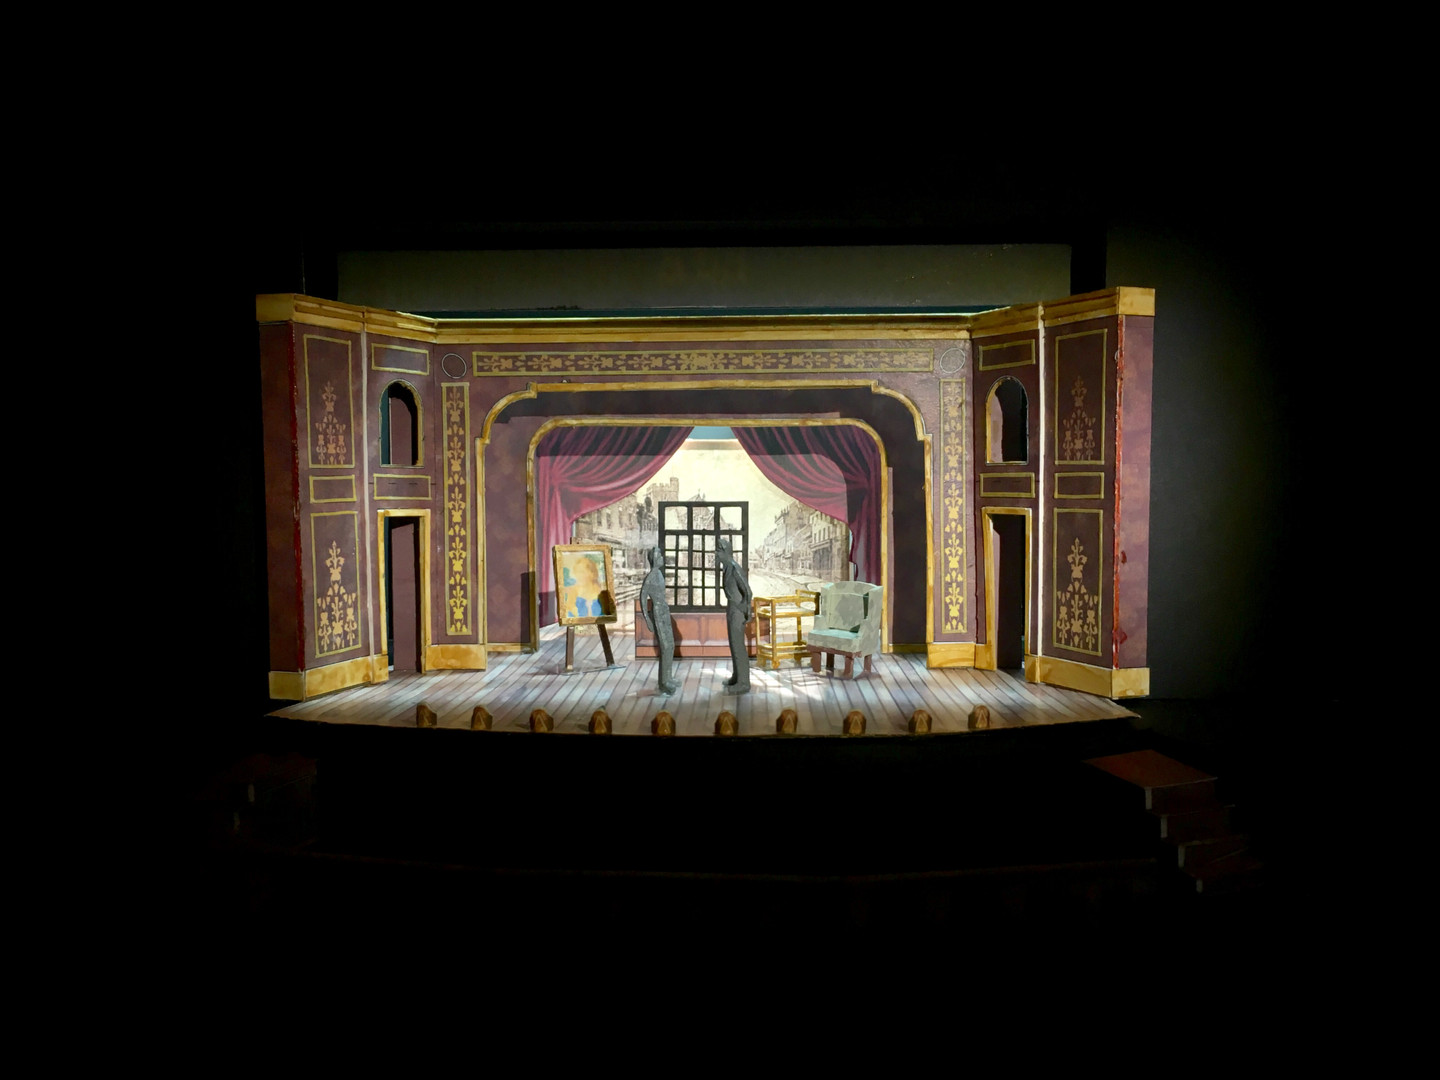 """The Mystery of Edwin Drood"" 1/4"" Model"